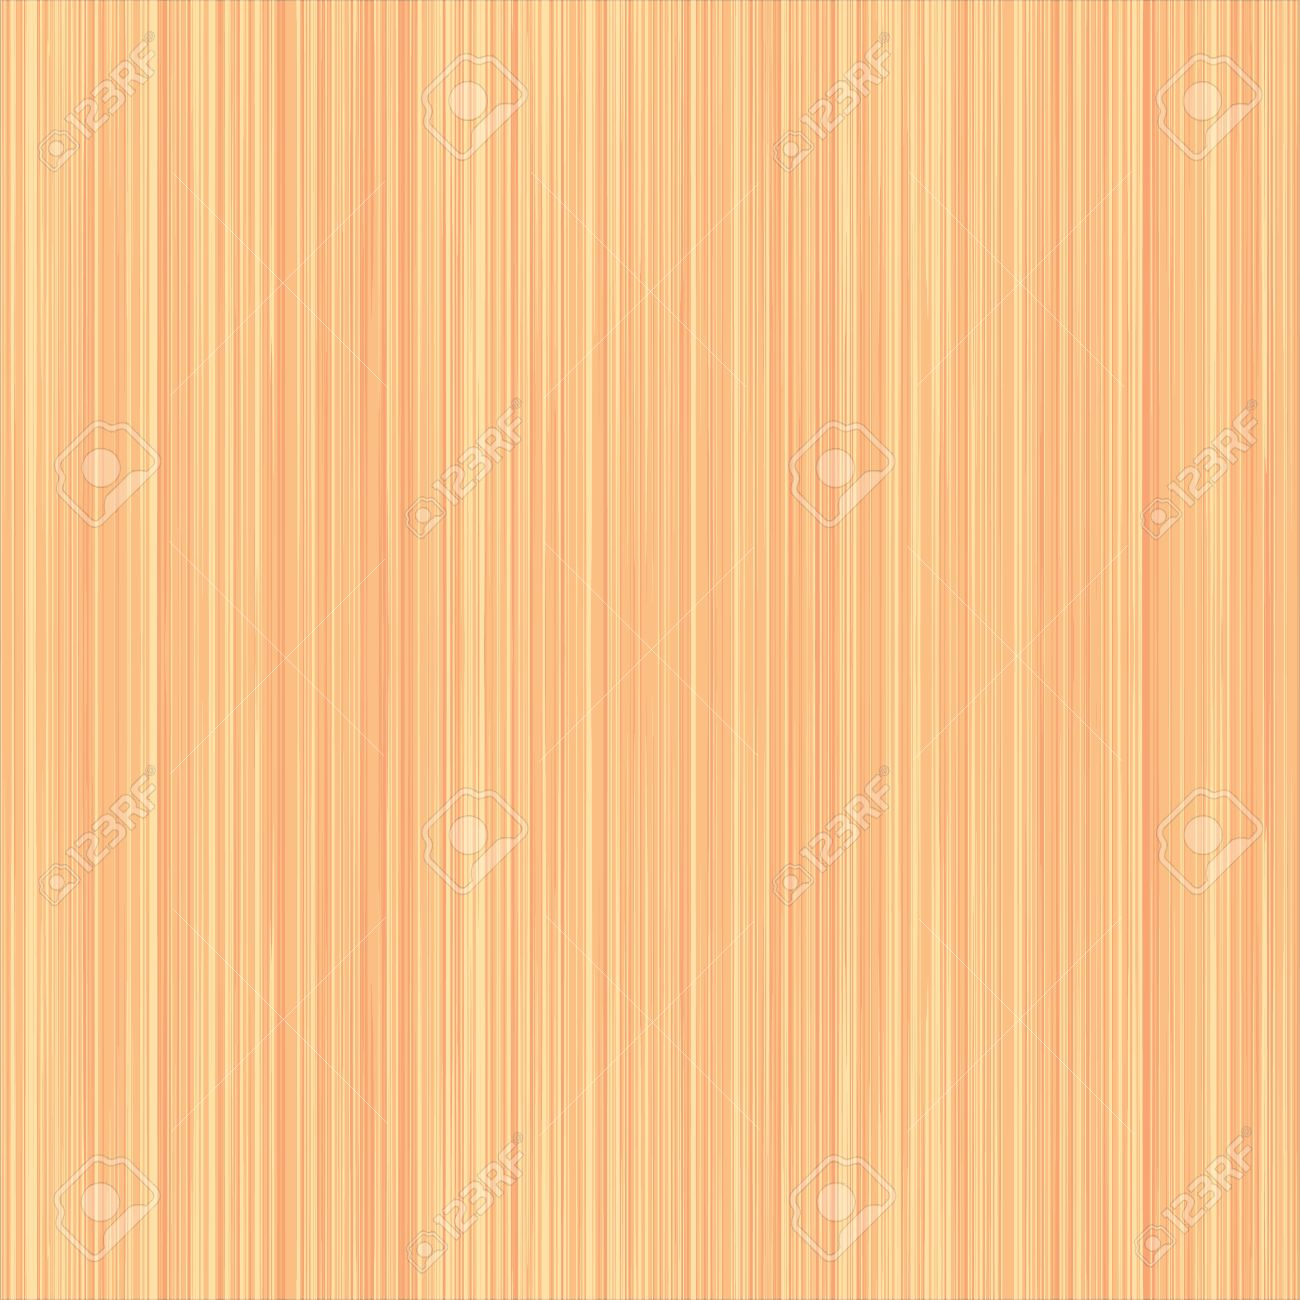 Wood table top texture - Wood Texture Vector Background Wooden Table Top Stock Vector 59402898